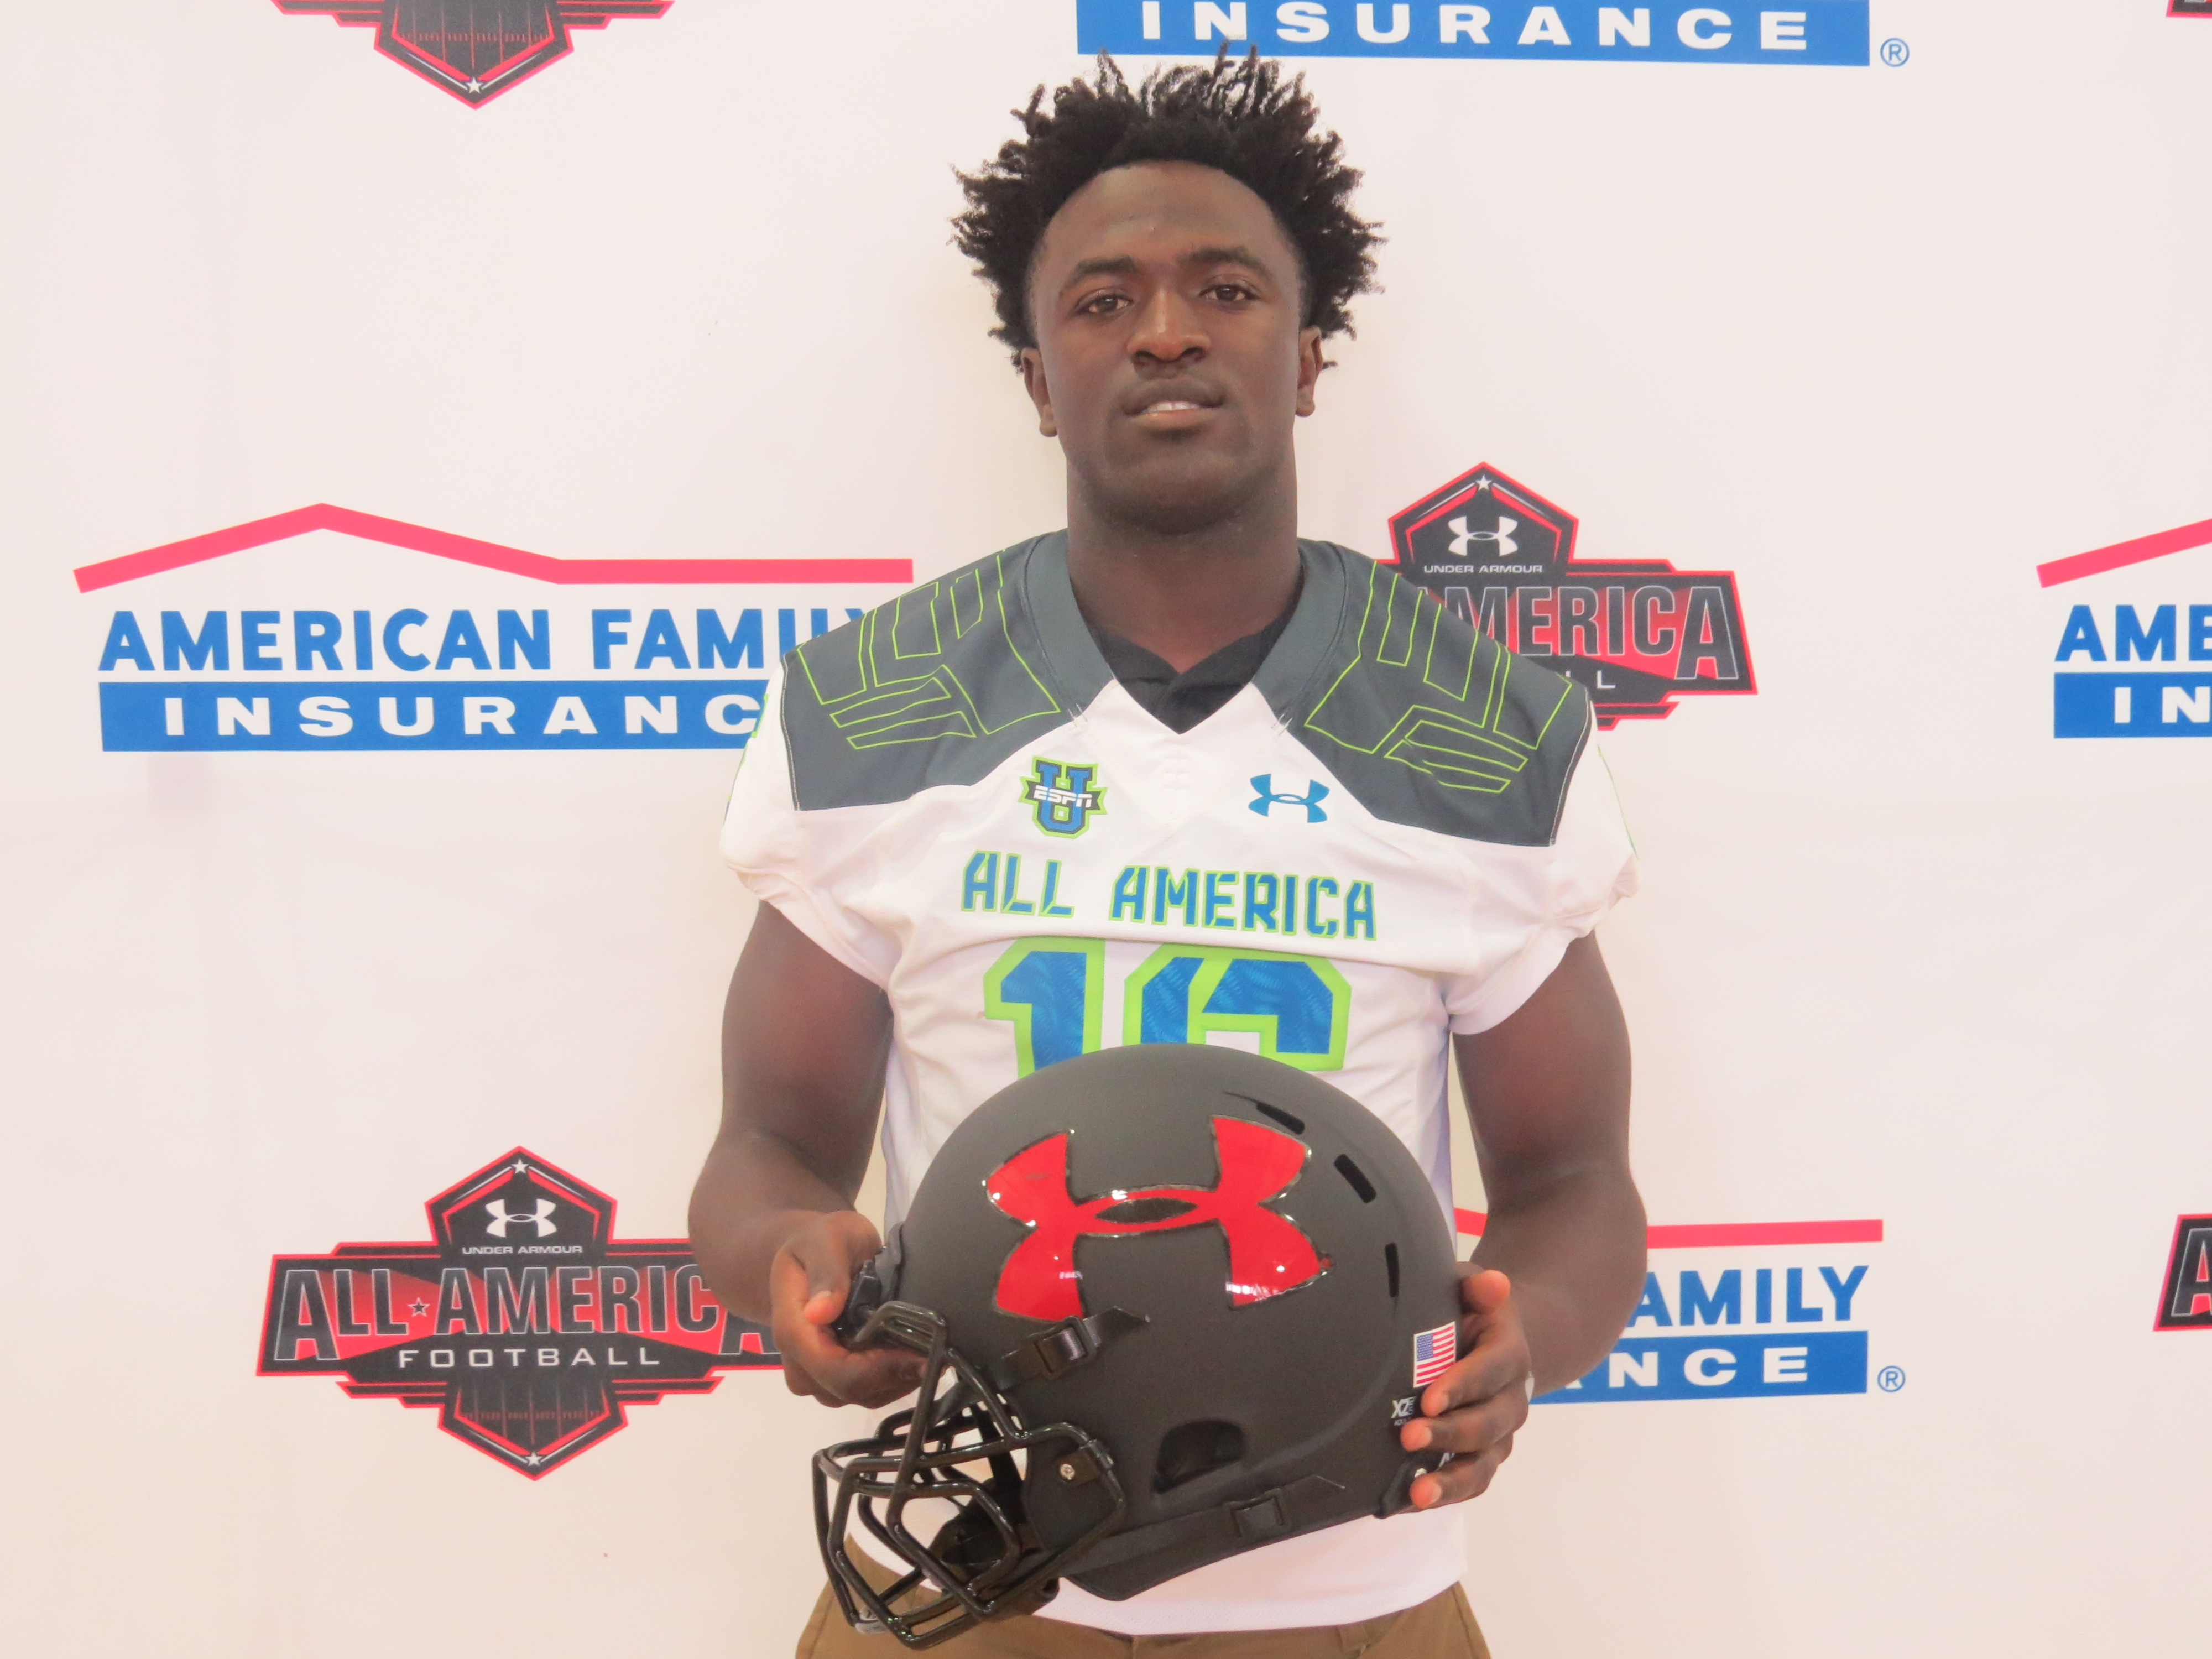 Tampa Catholic wide receiver Nate Craig-Myers' go-to move is unstoppable. (Photo: Under Armour All-American Bowl).